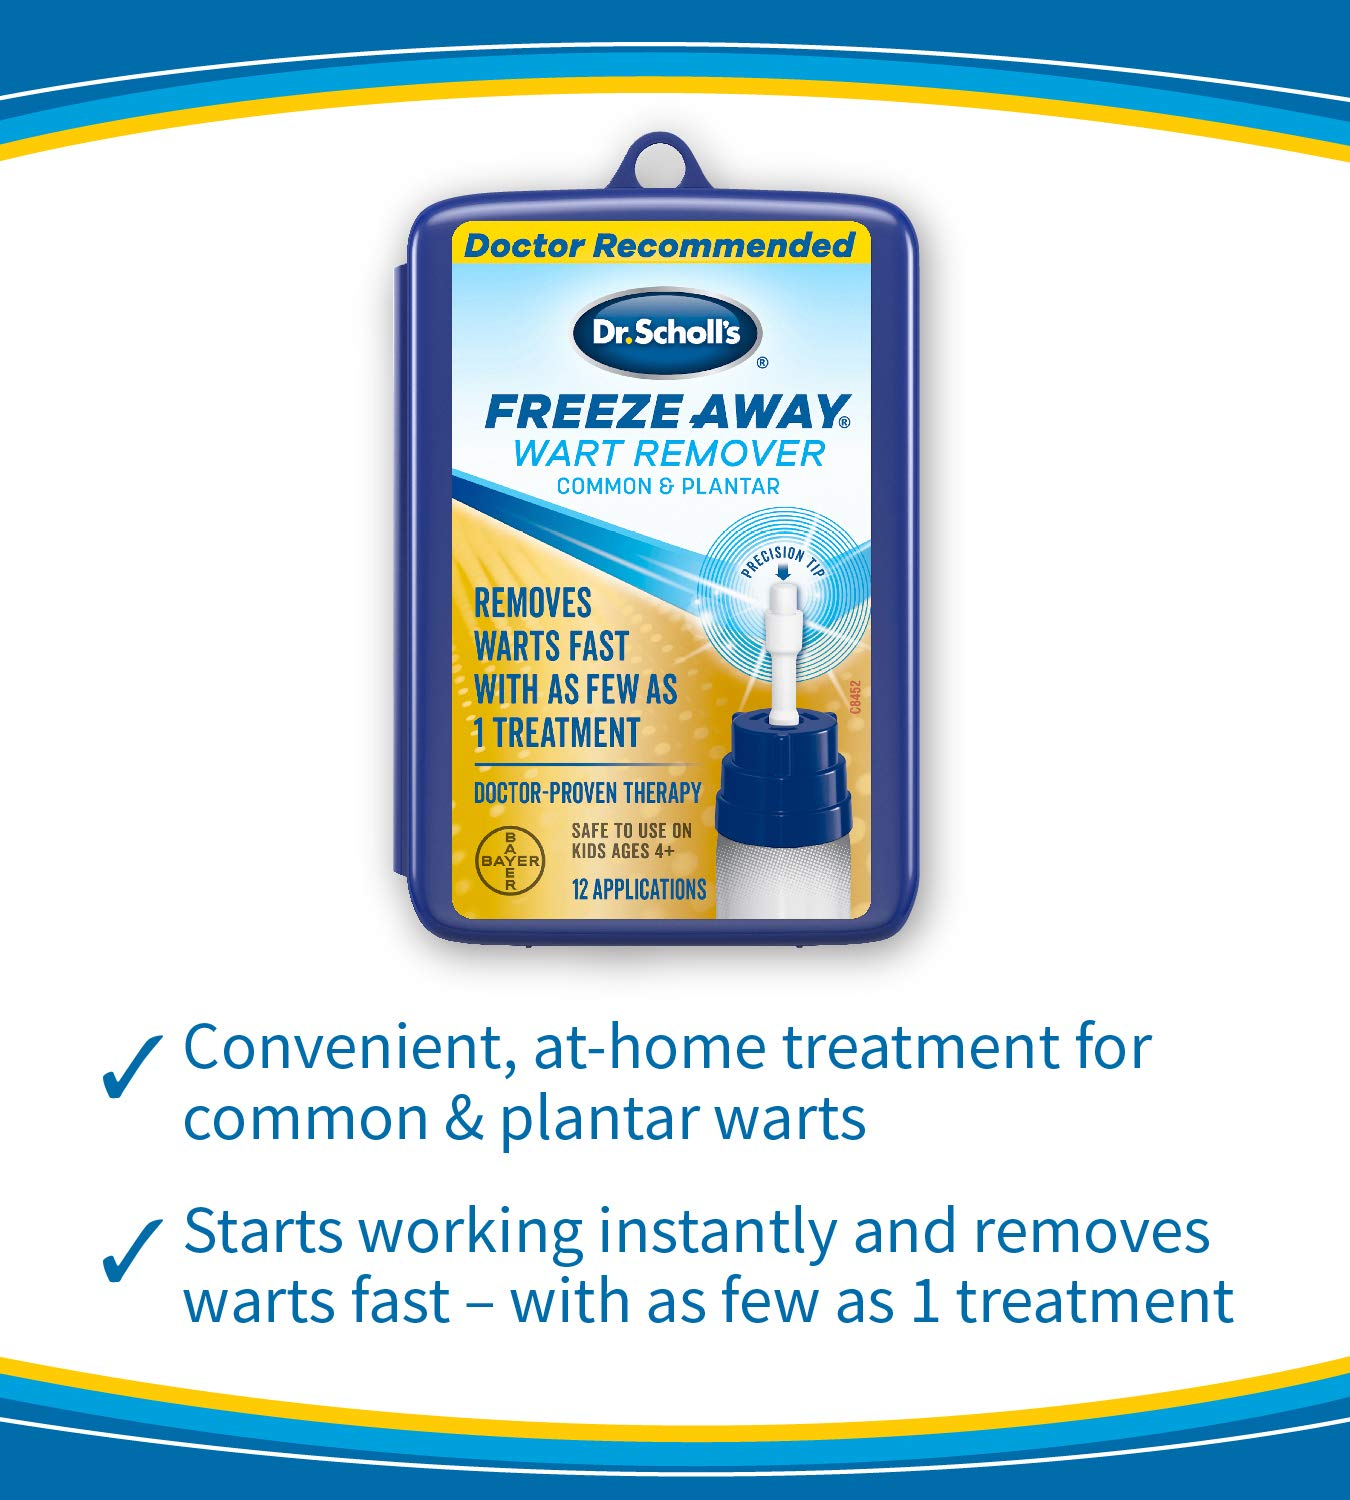 Dr. Scholl's FreezeAway Wart Remover, 12 Applications / Doctor-Proven Treatment to Rapidy Freeze and Remove Common and Plantar Warts